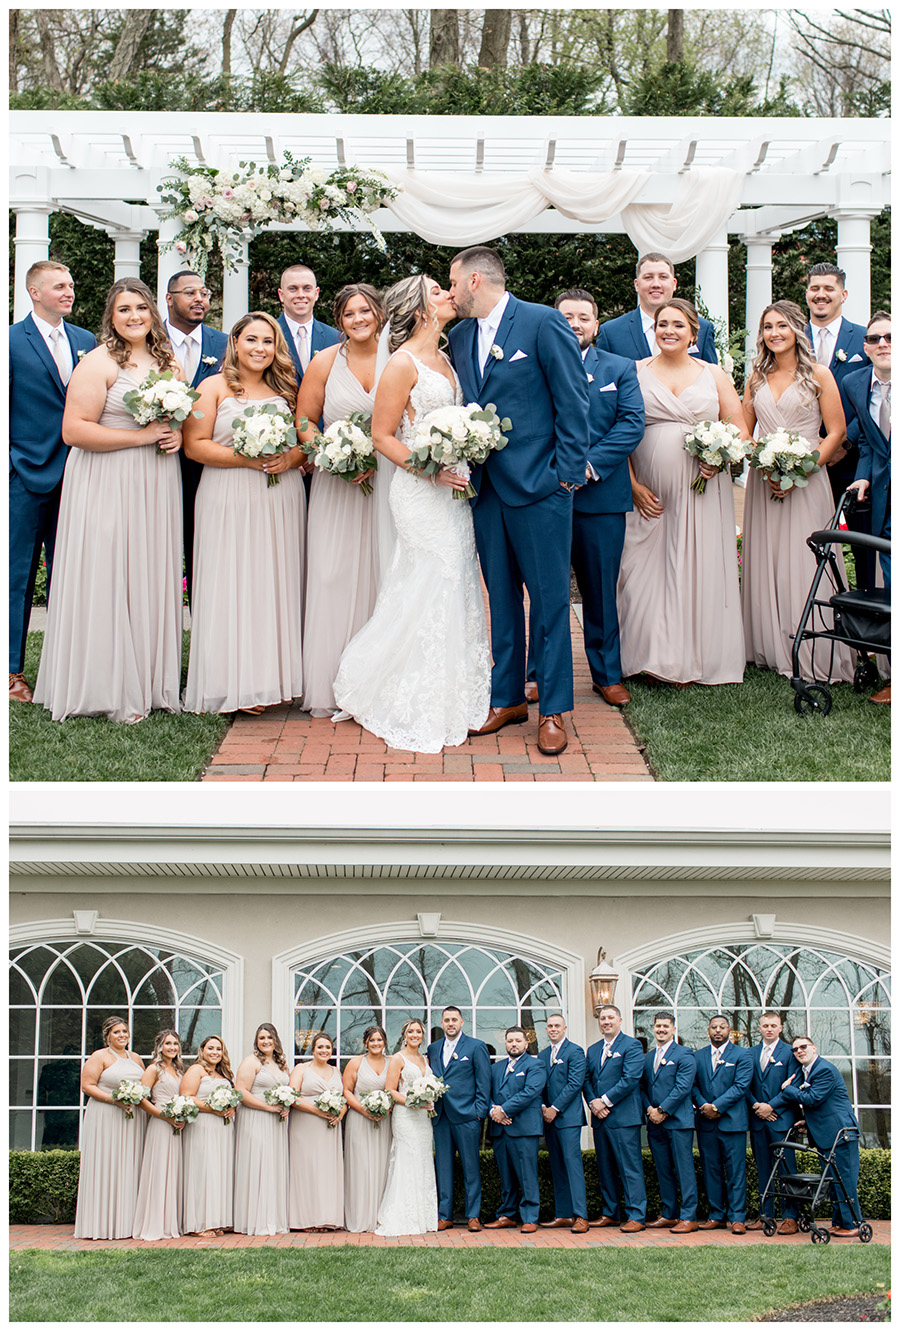 bridal party with navy tuxes and beige, neutral colored bridesmaid dresses and white bouquets